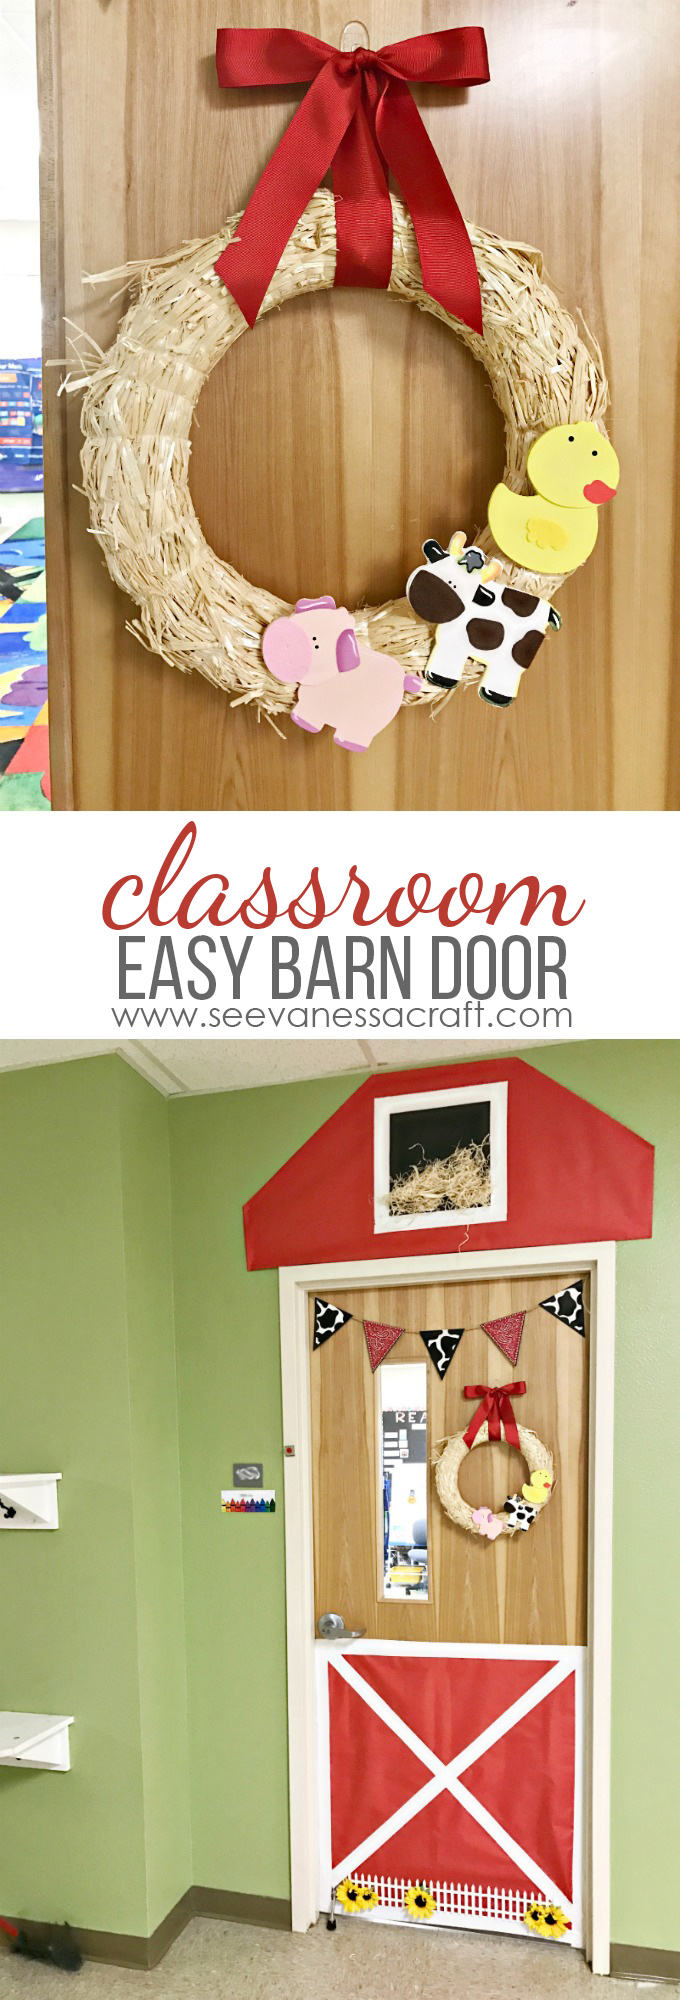 Classroom Decoration Easy ~ Craft easy classroom barn door and farm animal wreath